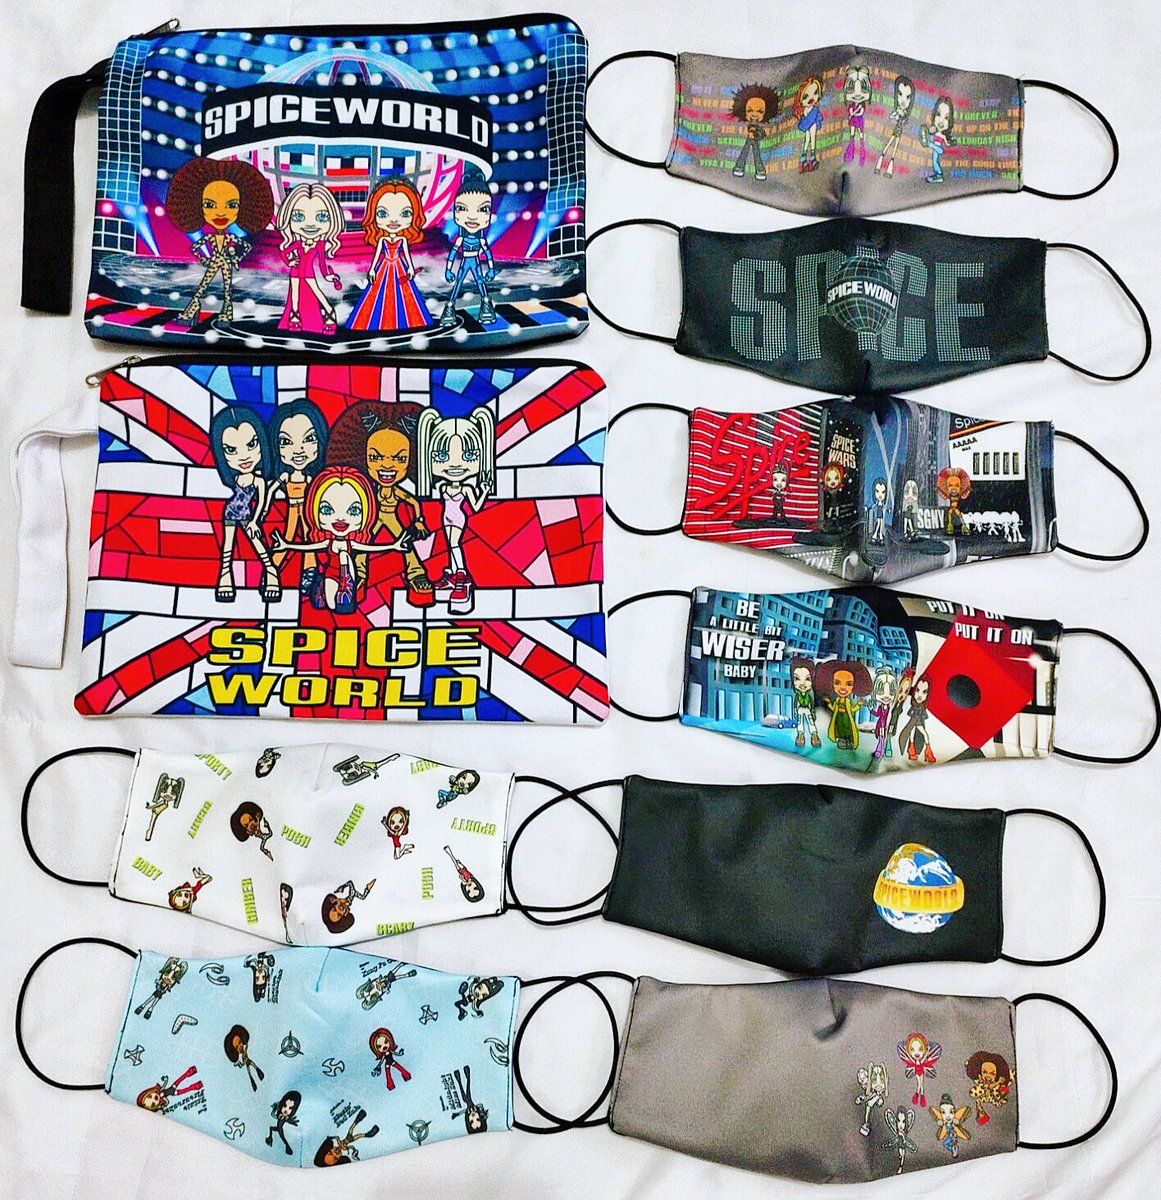 Just receive this cute 🙏 @spicegirls Masks and Pouches...  Original from https://t.co/5bFFkvvmmH Keep safe using Spice Mask ✌️😜 #spicegirls https://t.co/XR1rZhlo0L